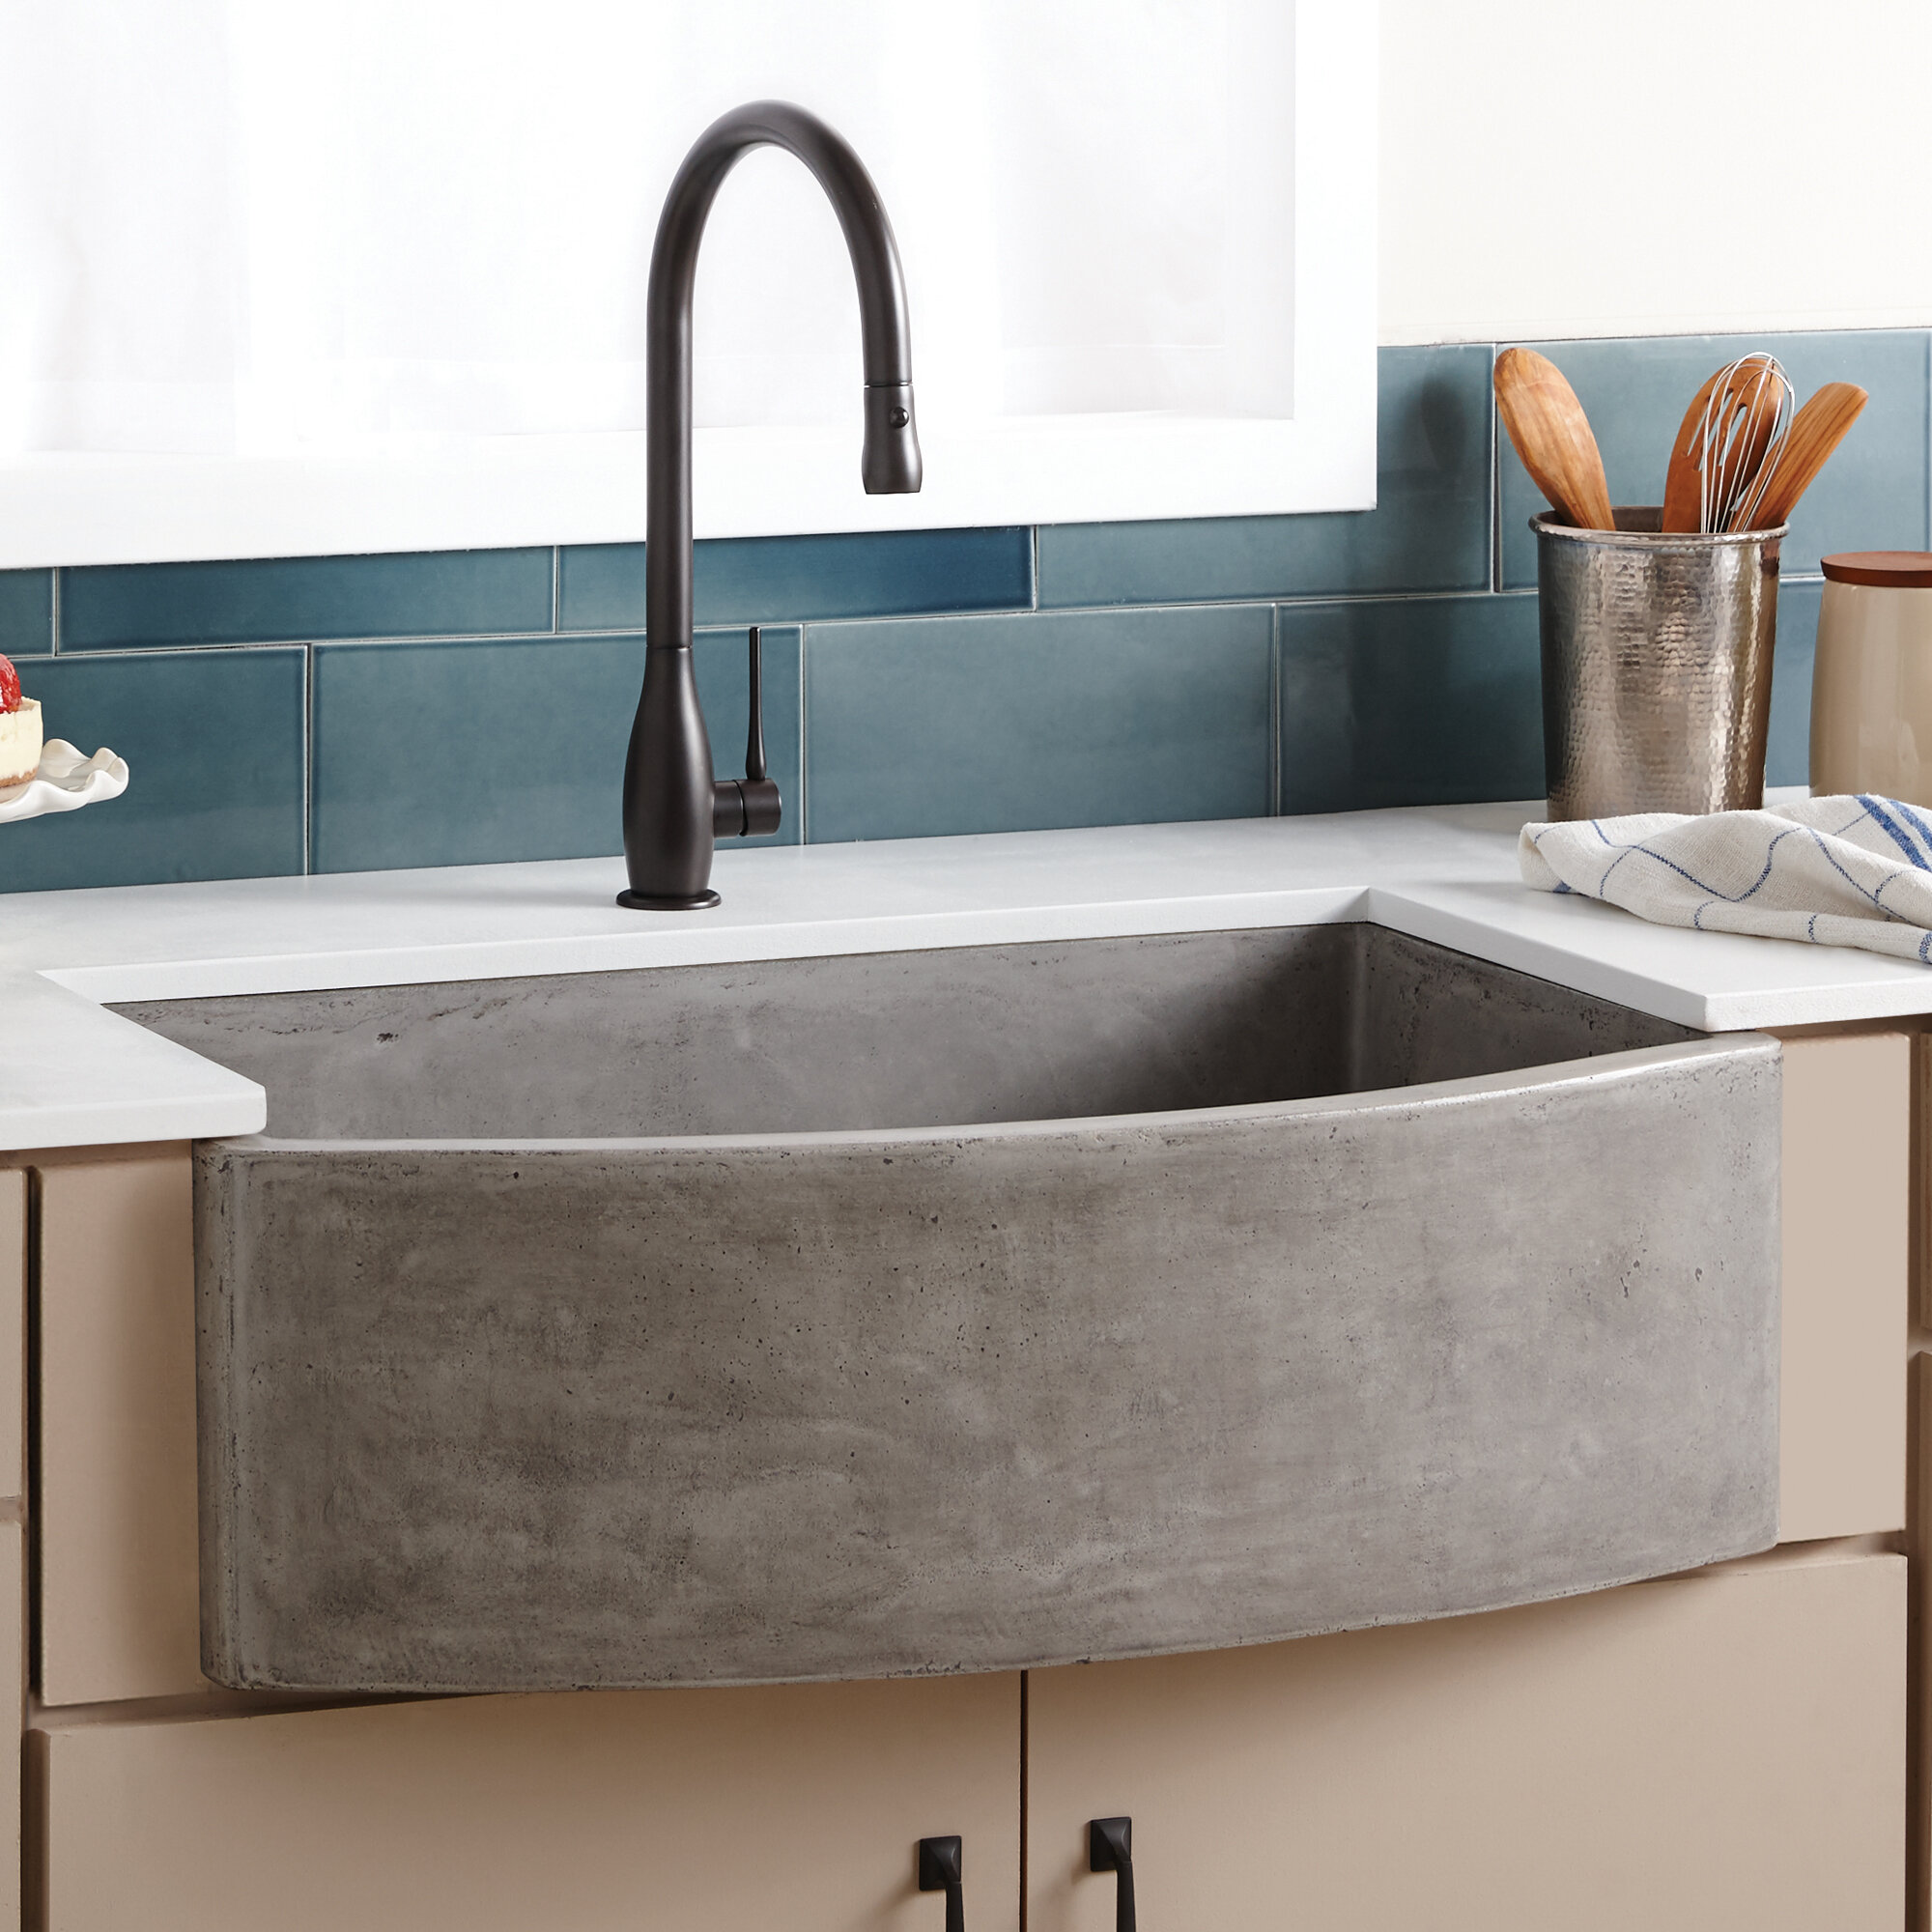 Stainless Steel Kitchen Sink Archives Hosteriadelfrayle